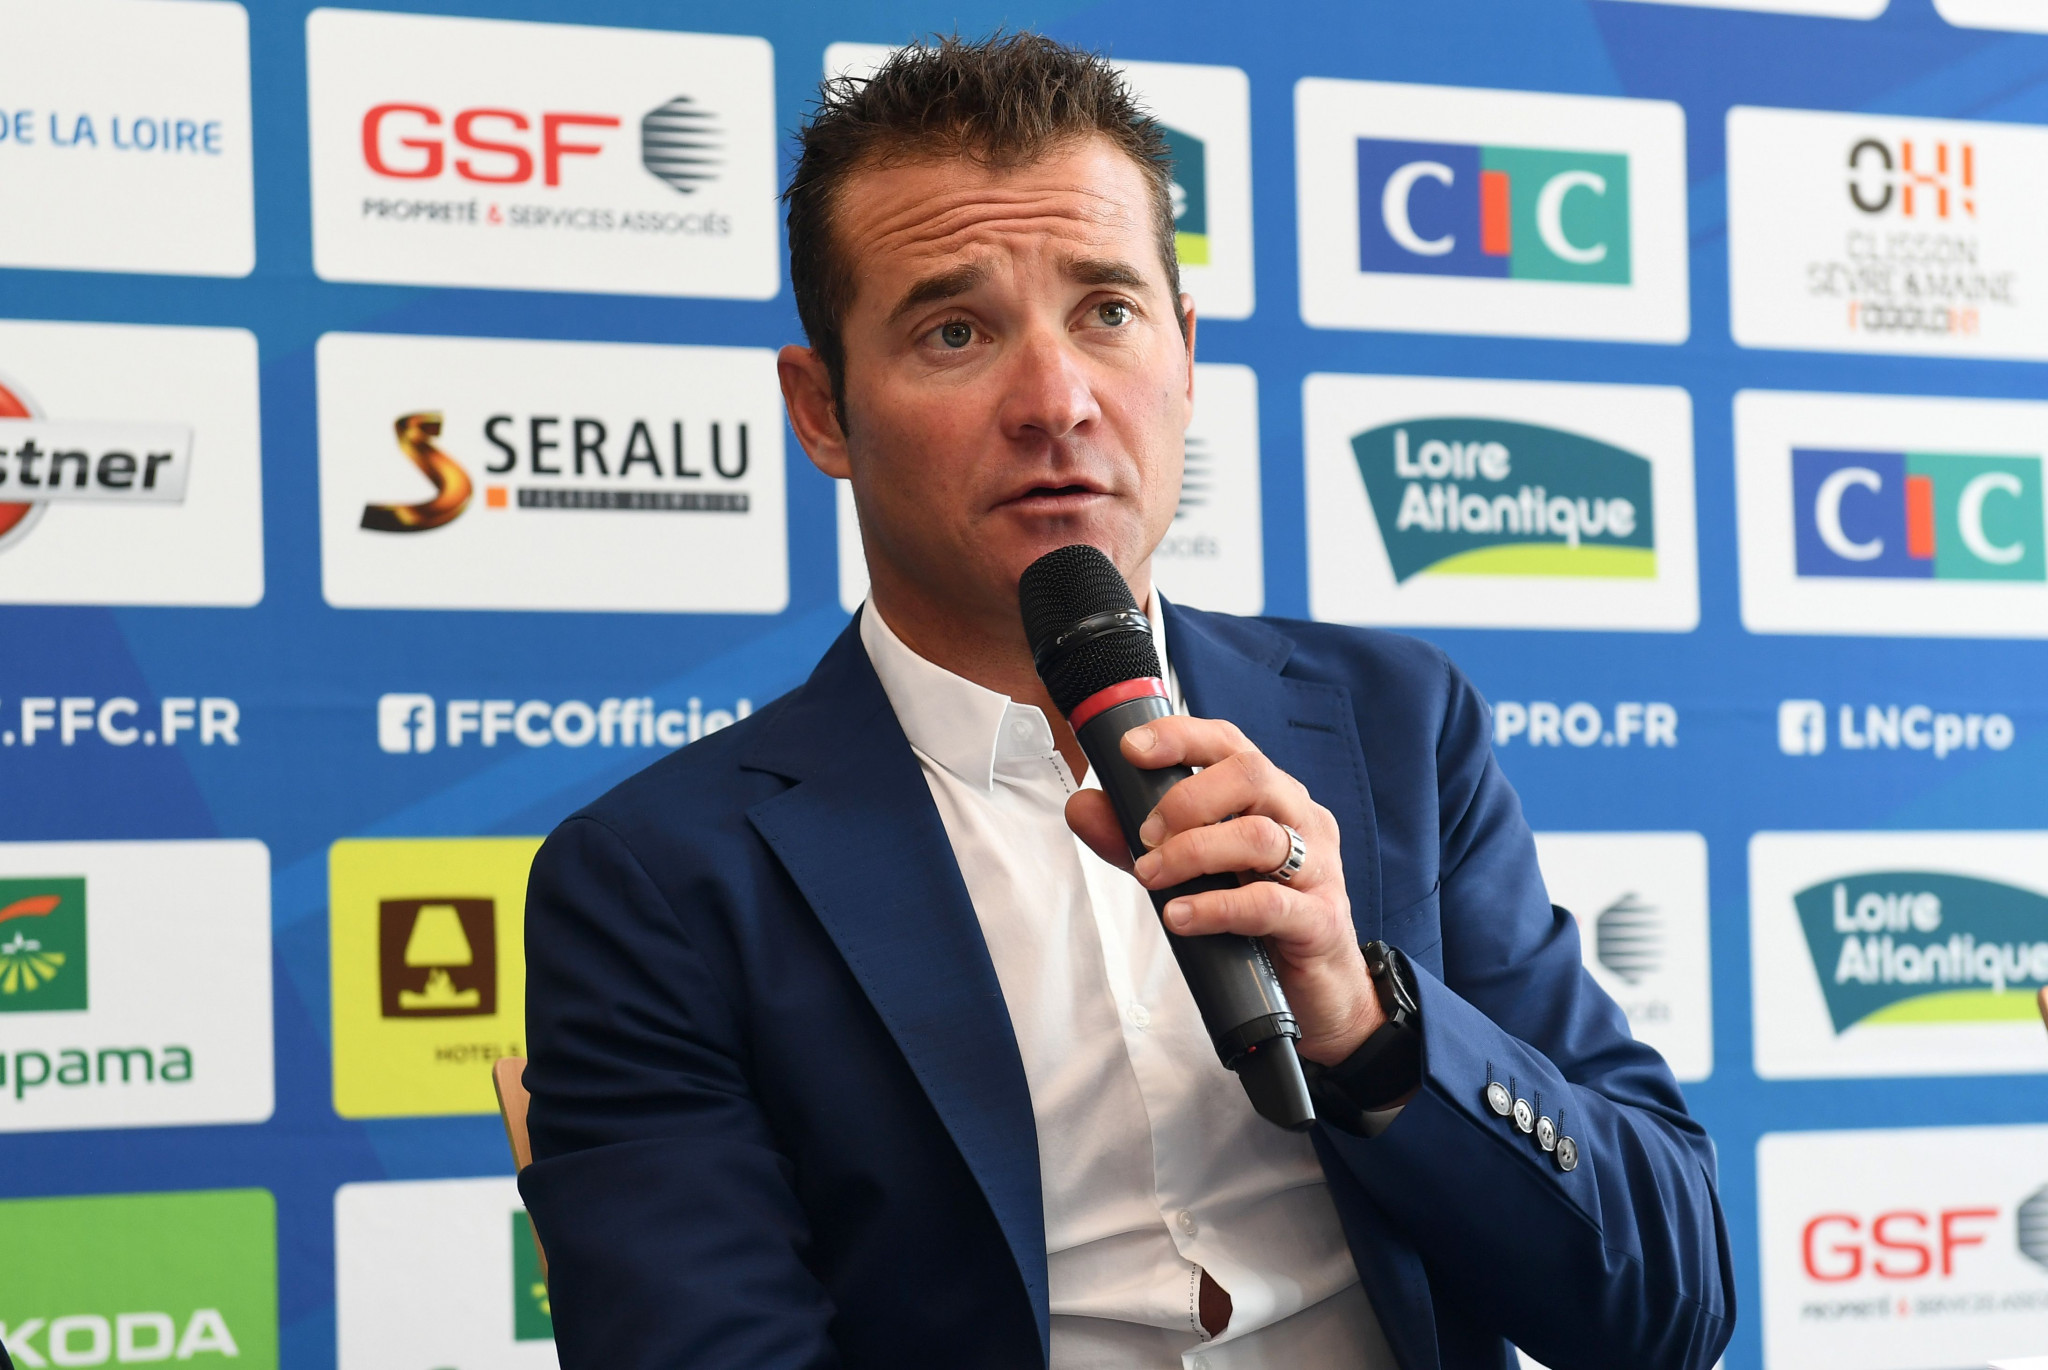 French cycling manager Voeckler warns best riders will skip Tokyo 2020 for Tour de France